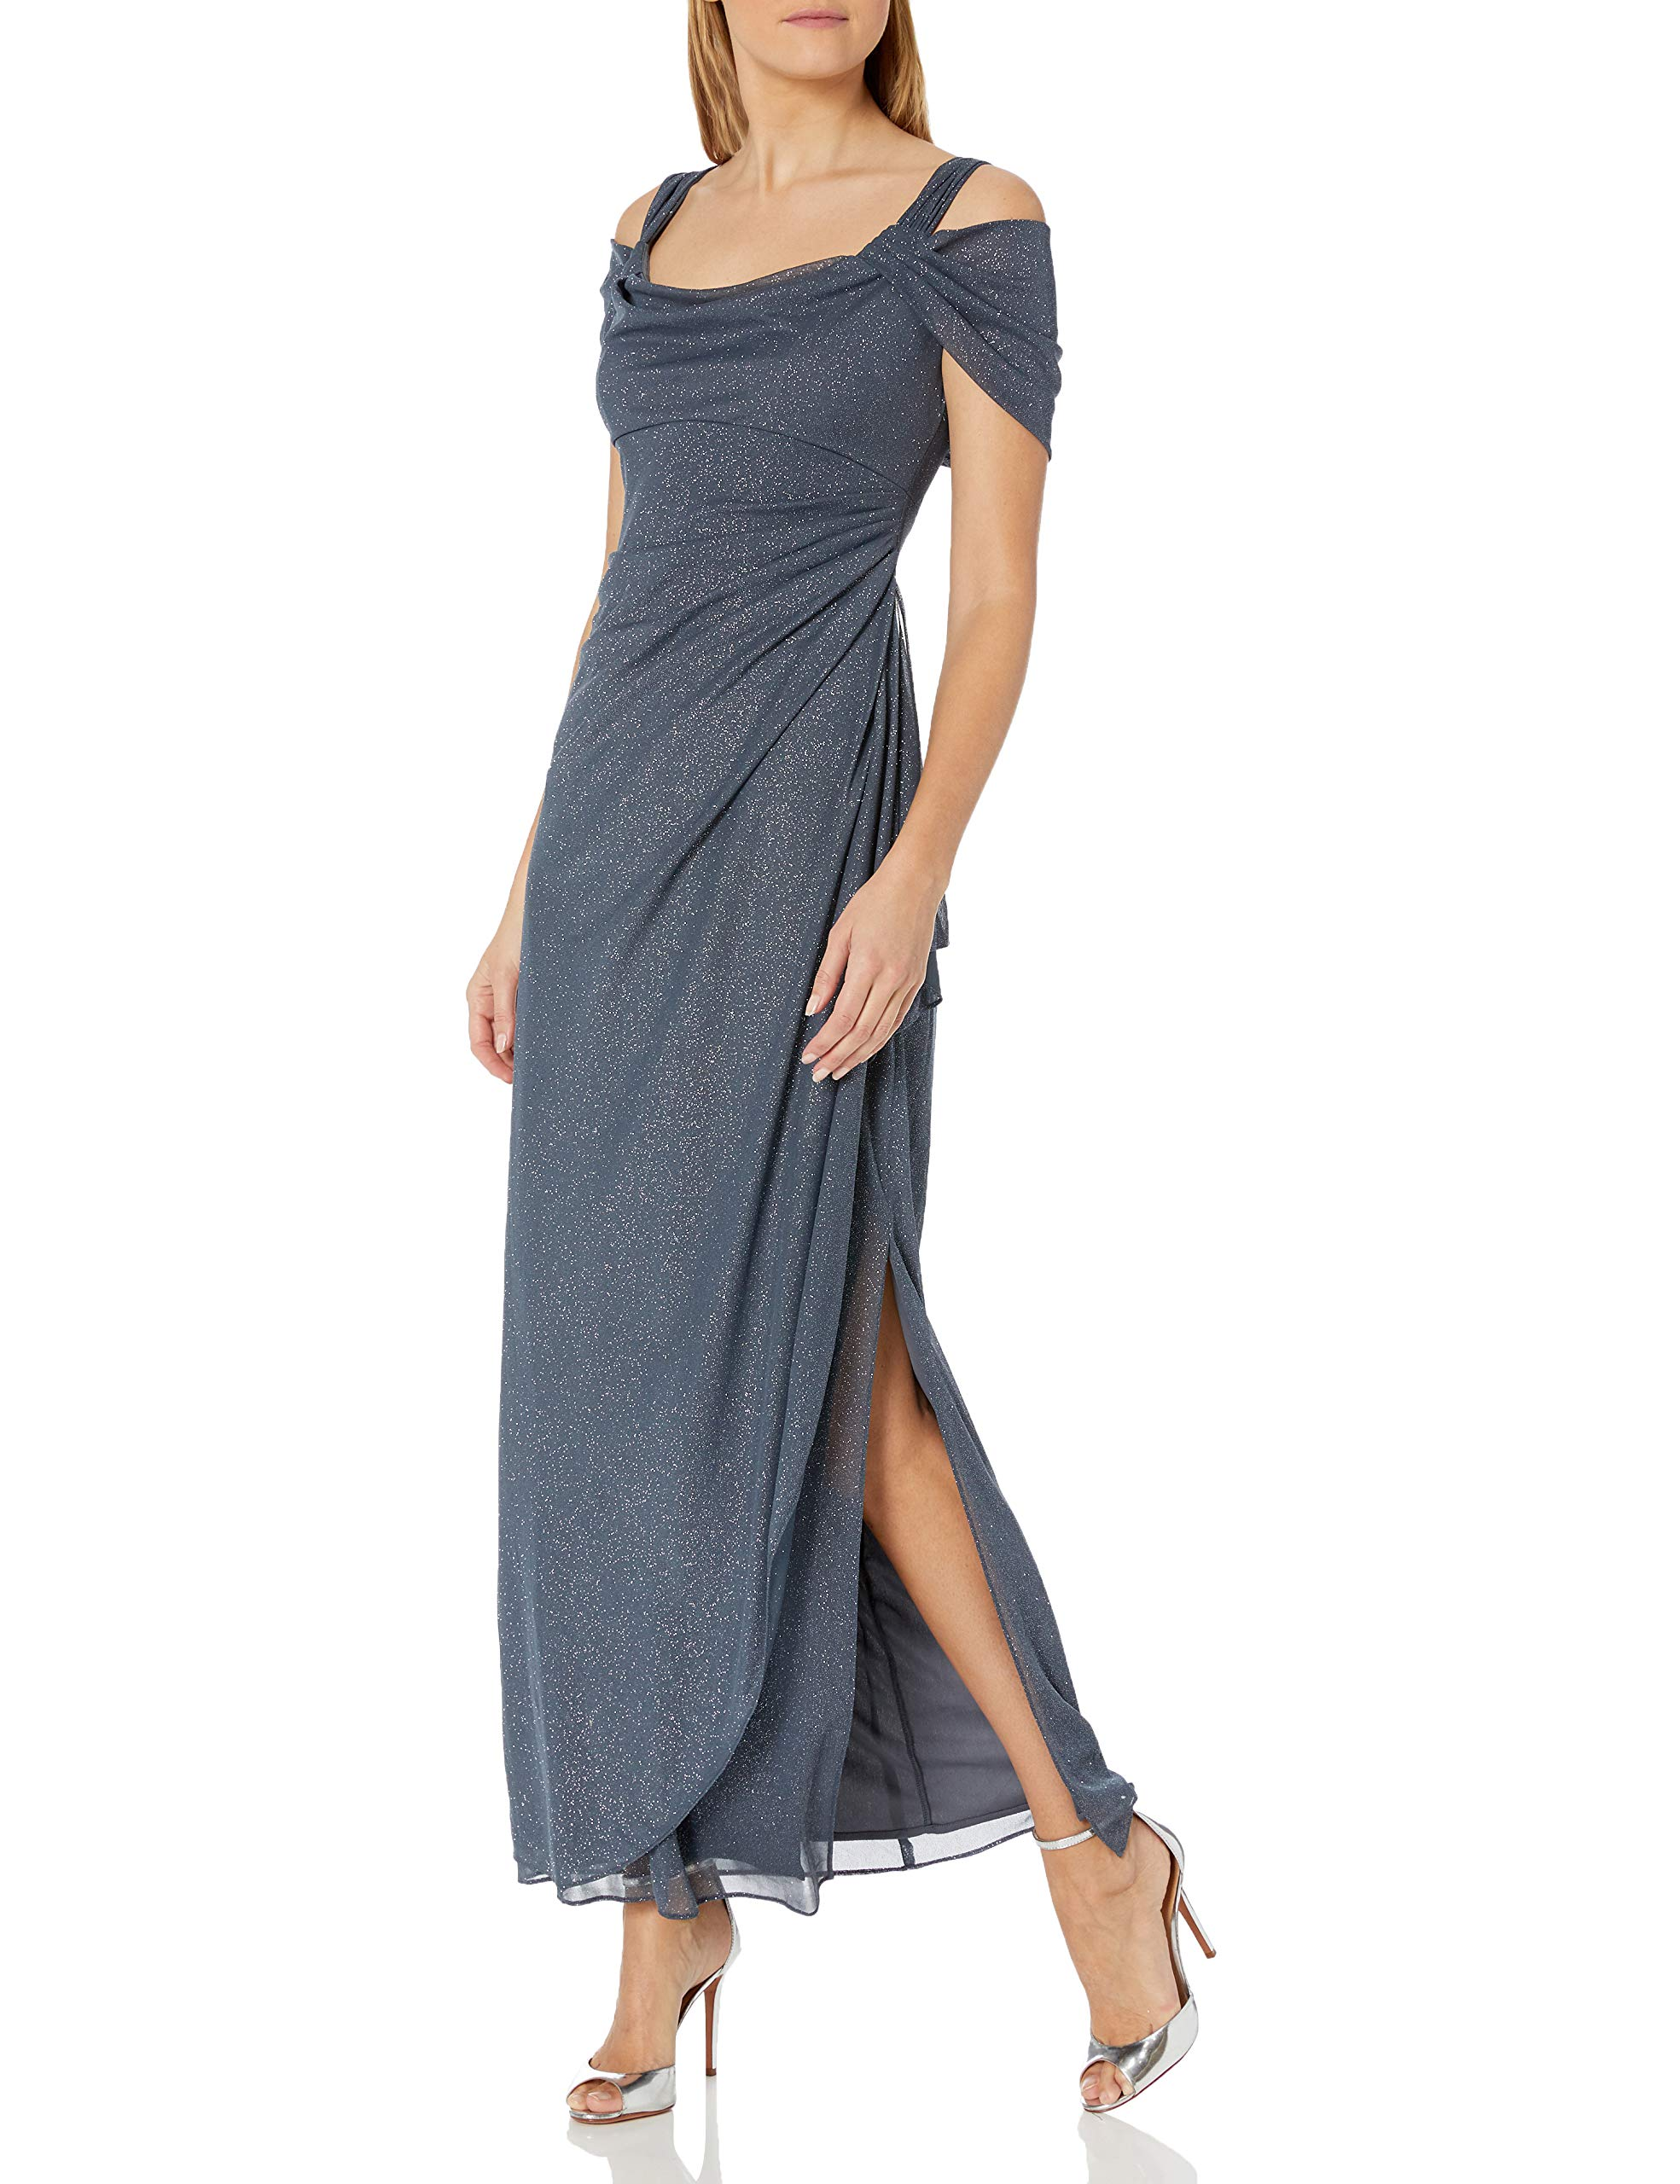 Mother Of The Bride Dresses - Women's Long Cold Shoulder Dress (Petite And Regular Sizes)